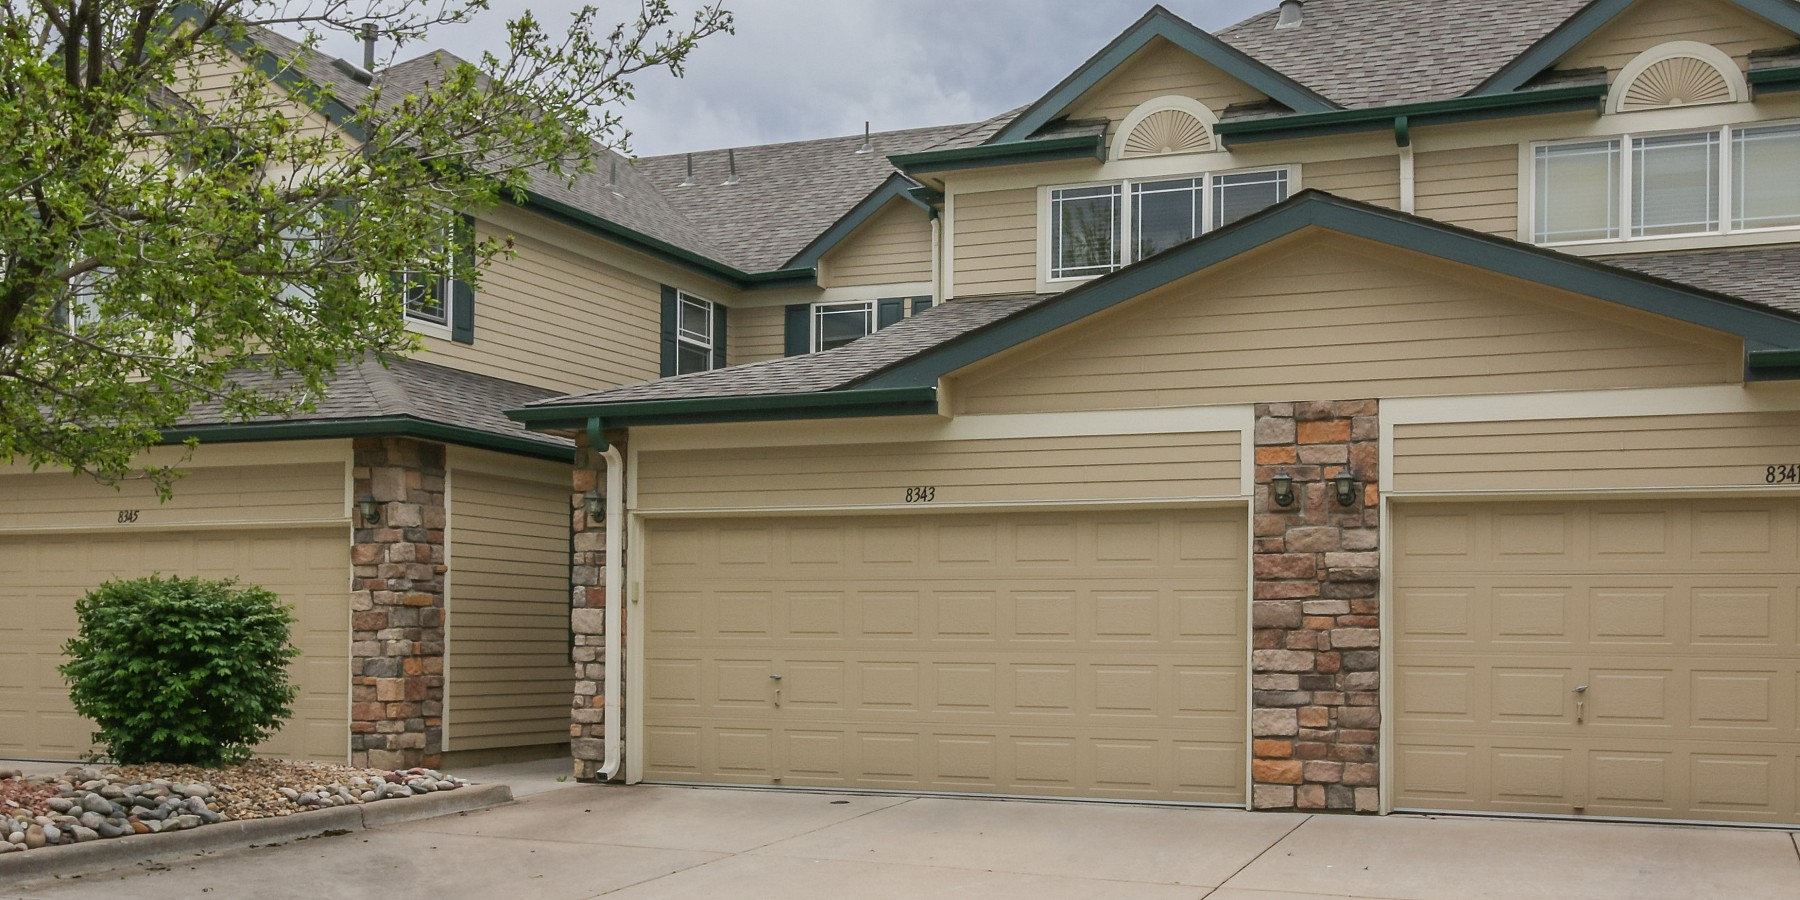 8343 South Garland Circle, Littleton, CO 80128